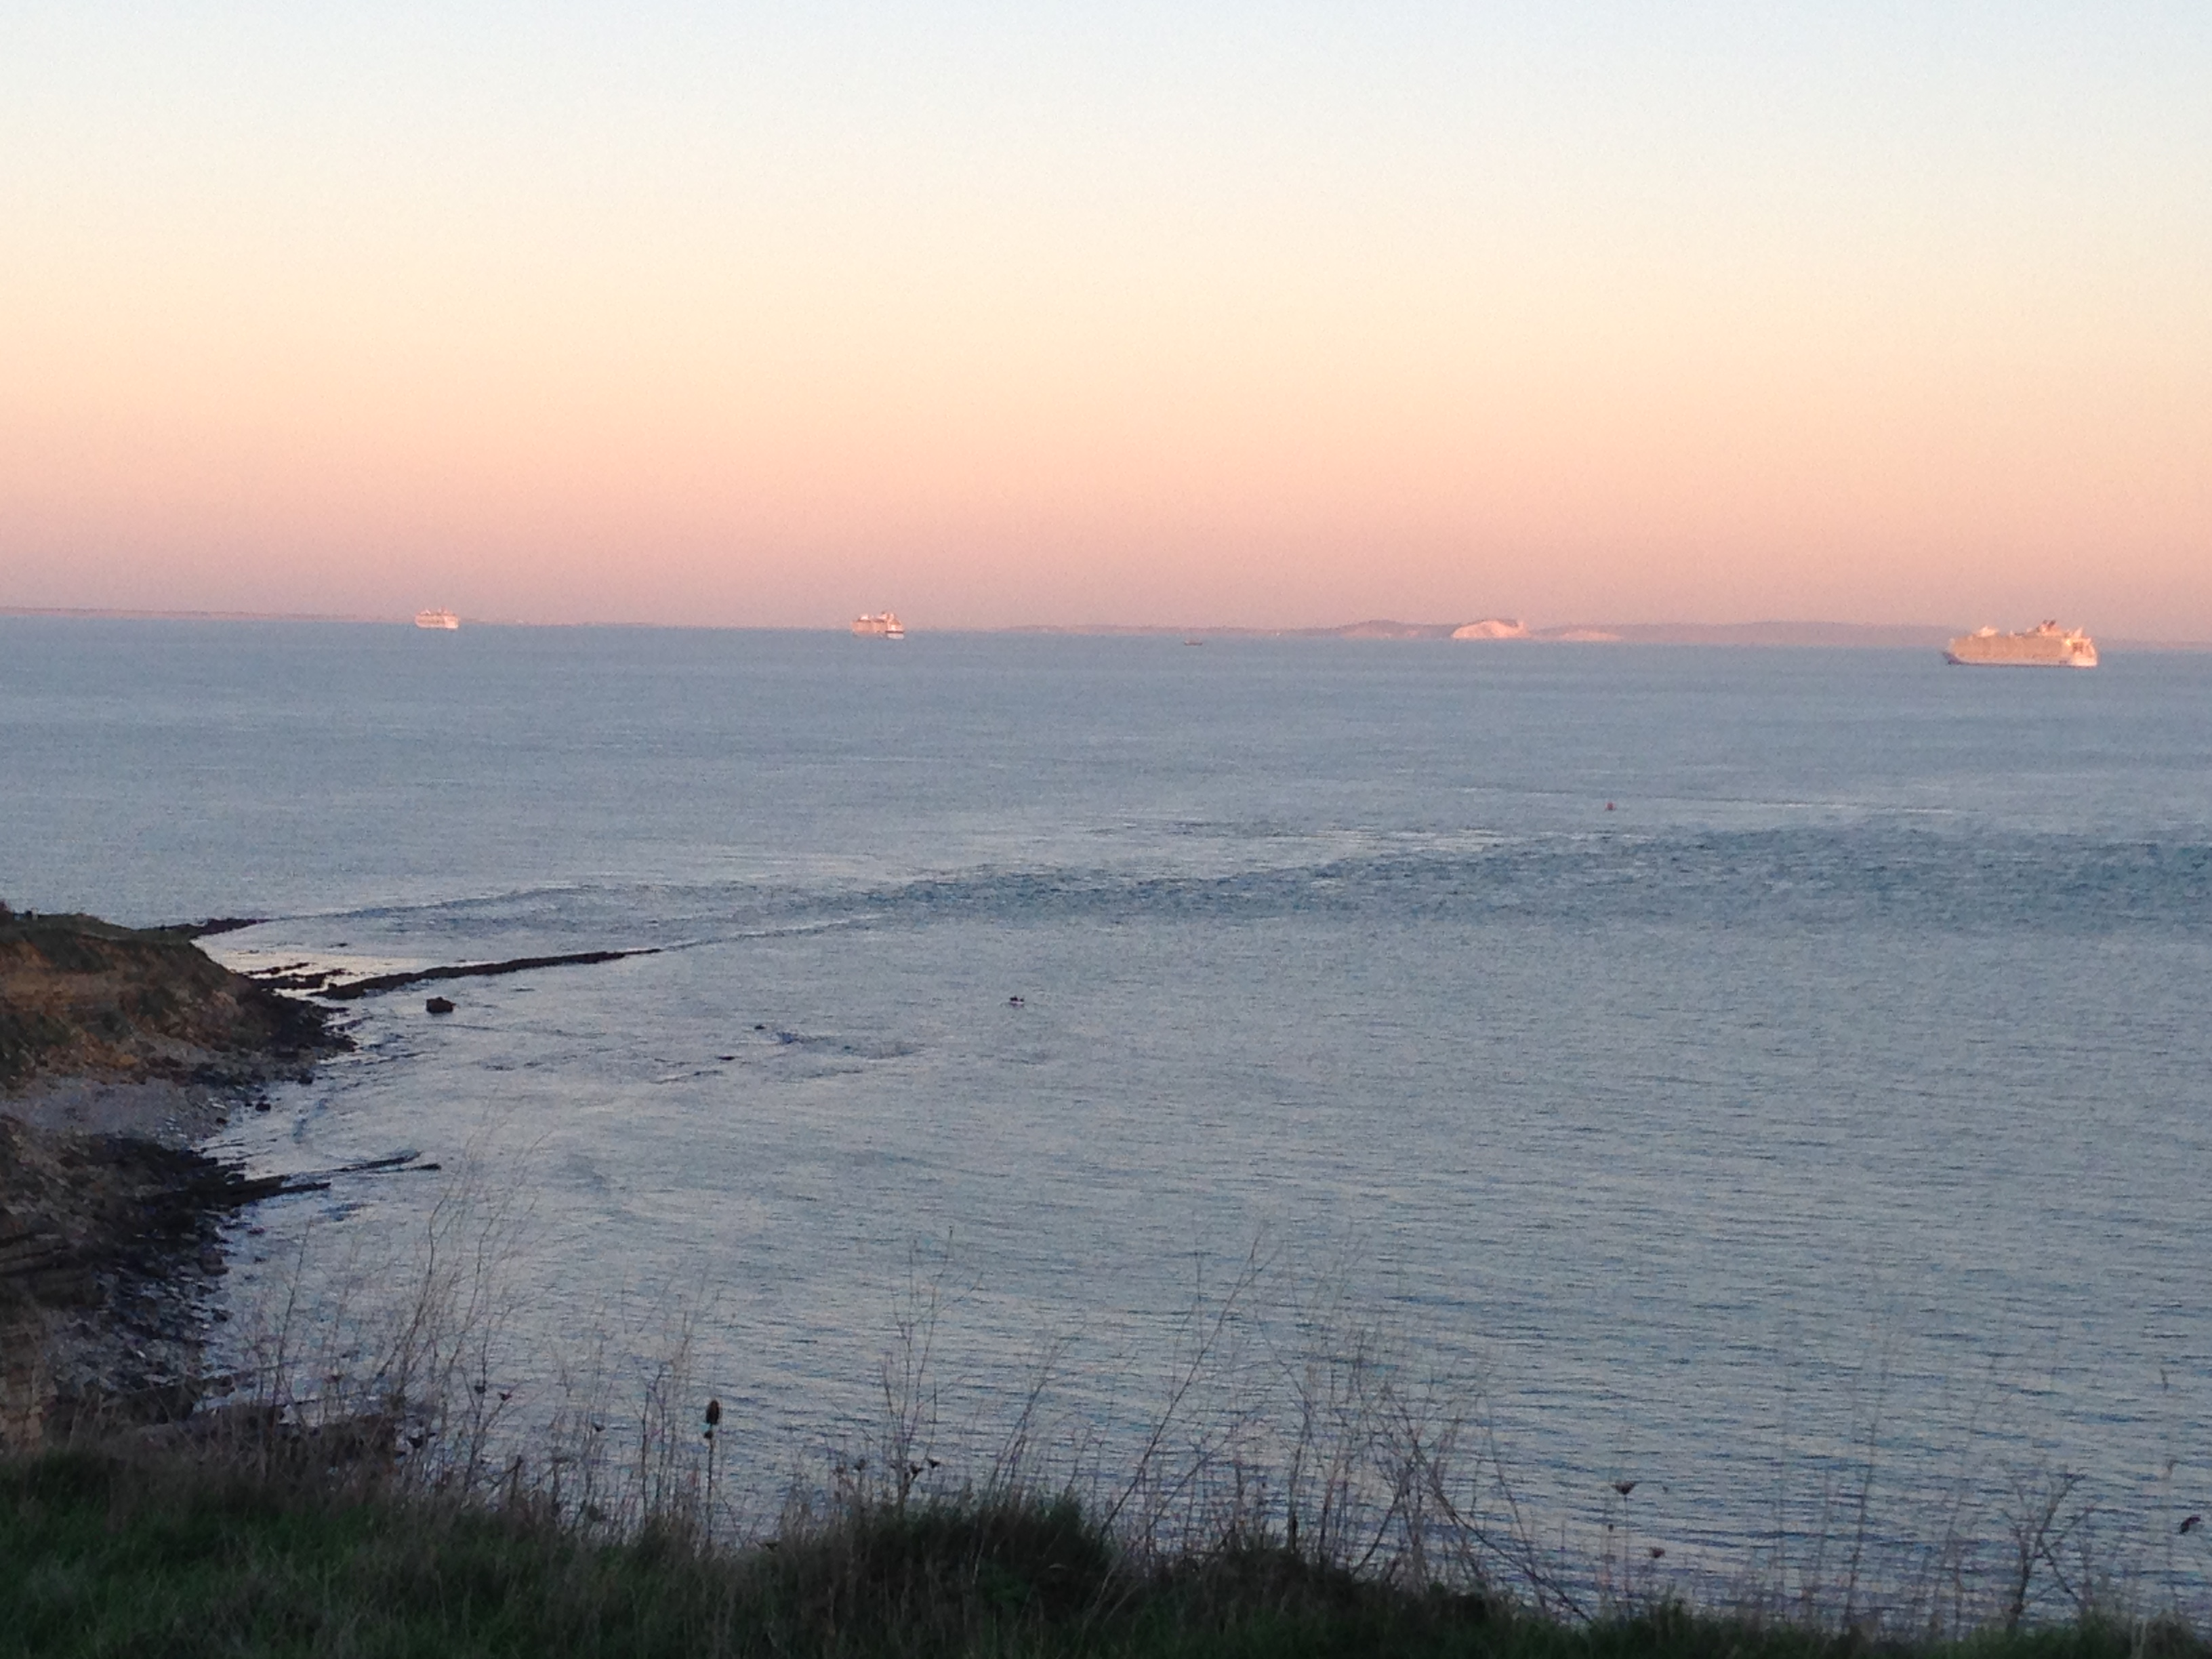 Last night from Peveril Point